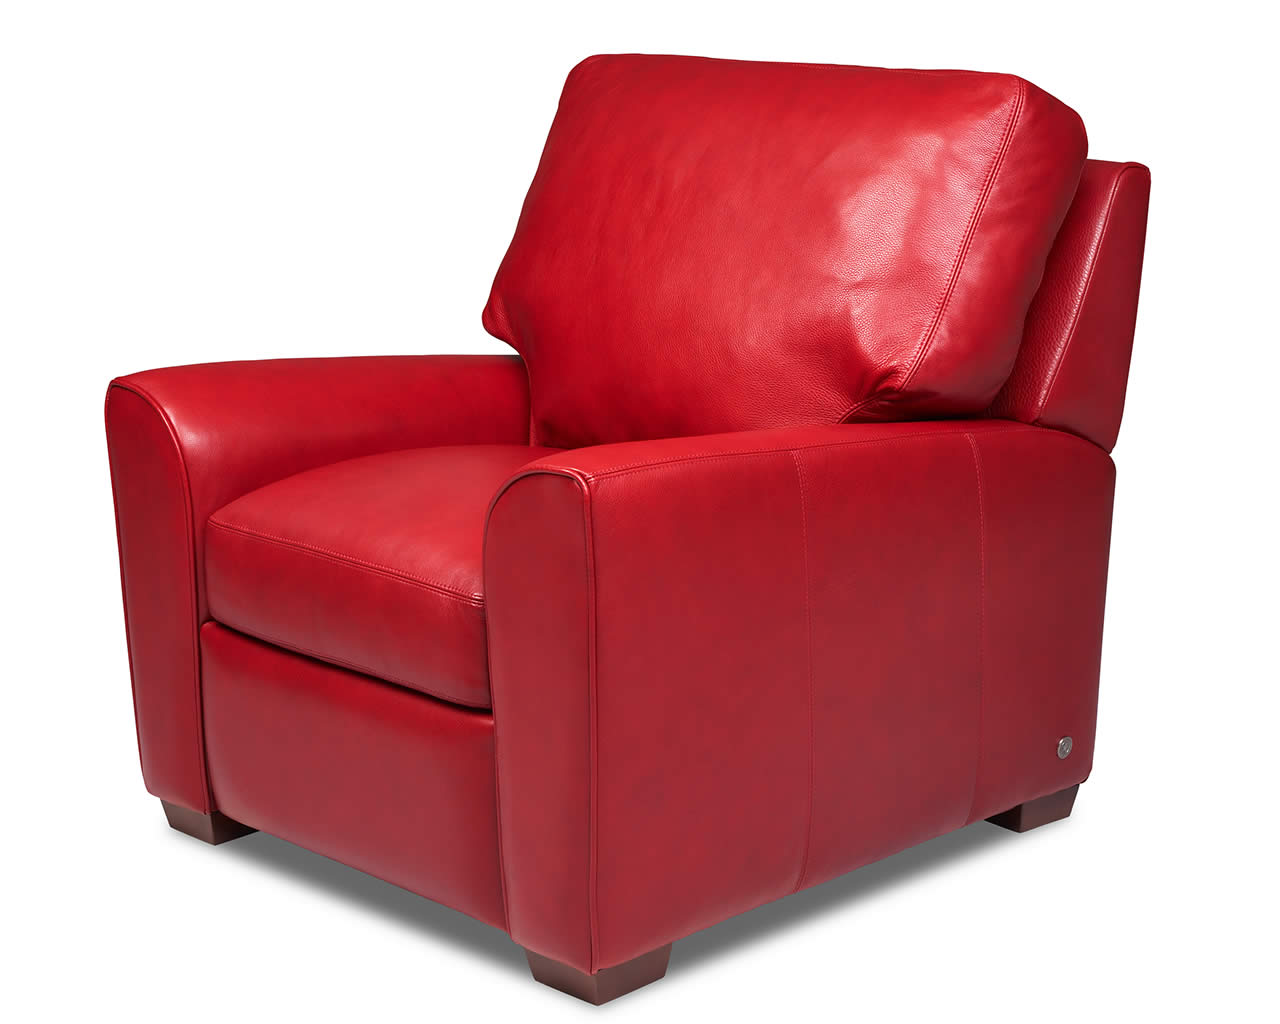 sofa and chairs bloomington mn contemporary modern beds kayla recliner sofas of minnesota